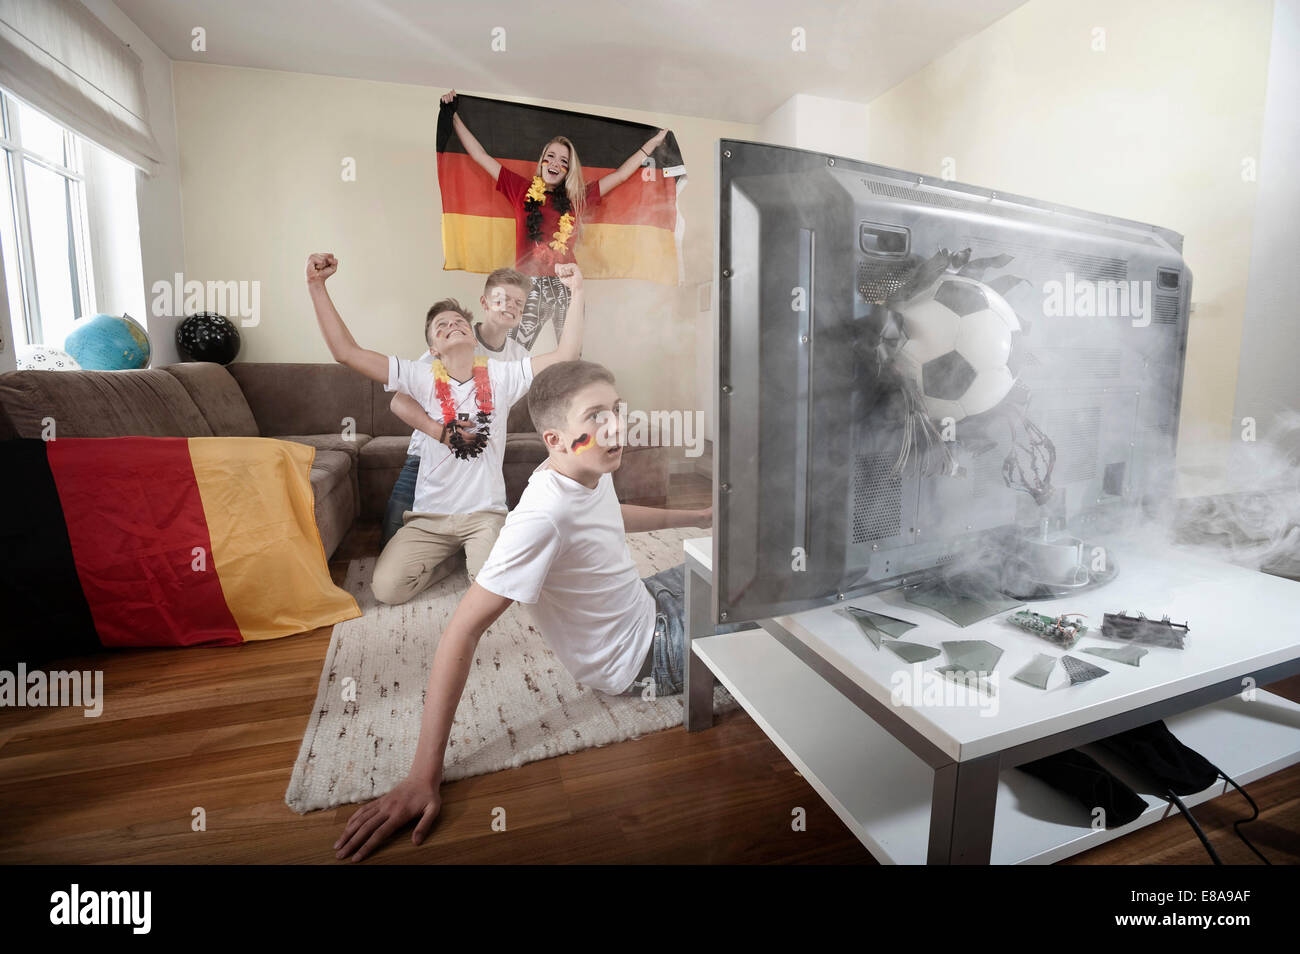 Teenage soccer fans in living room with ball demolishing TV - Stock Image